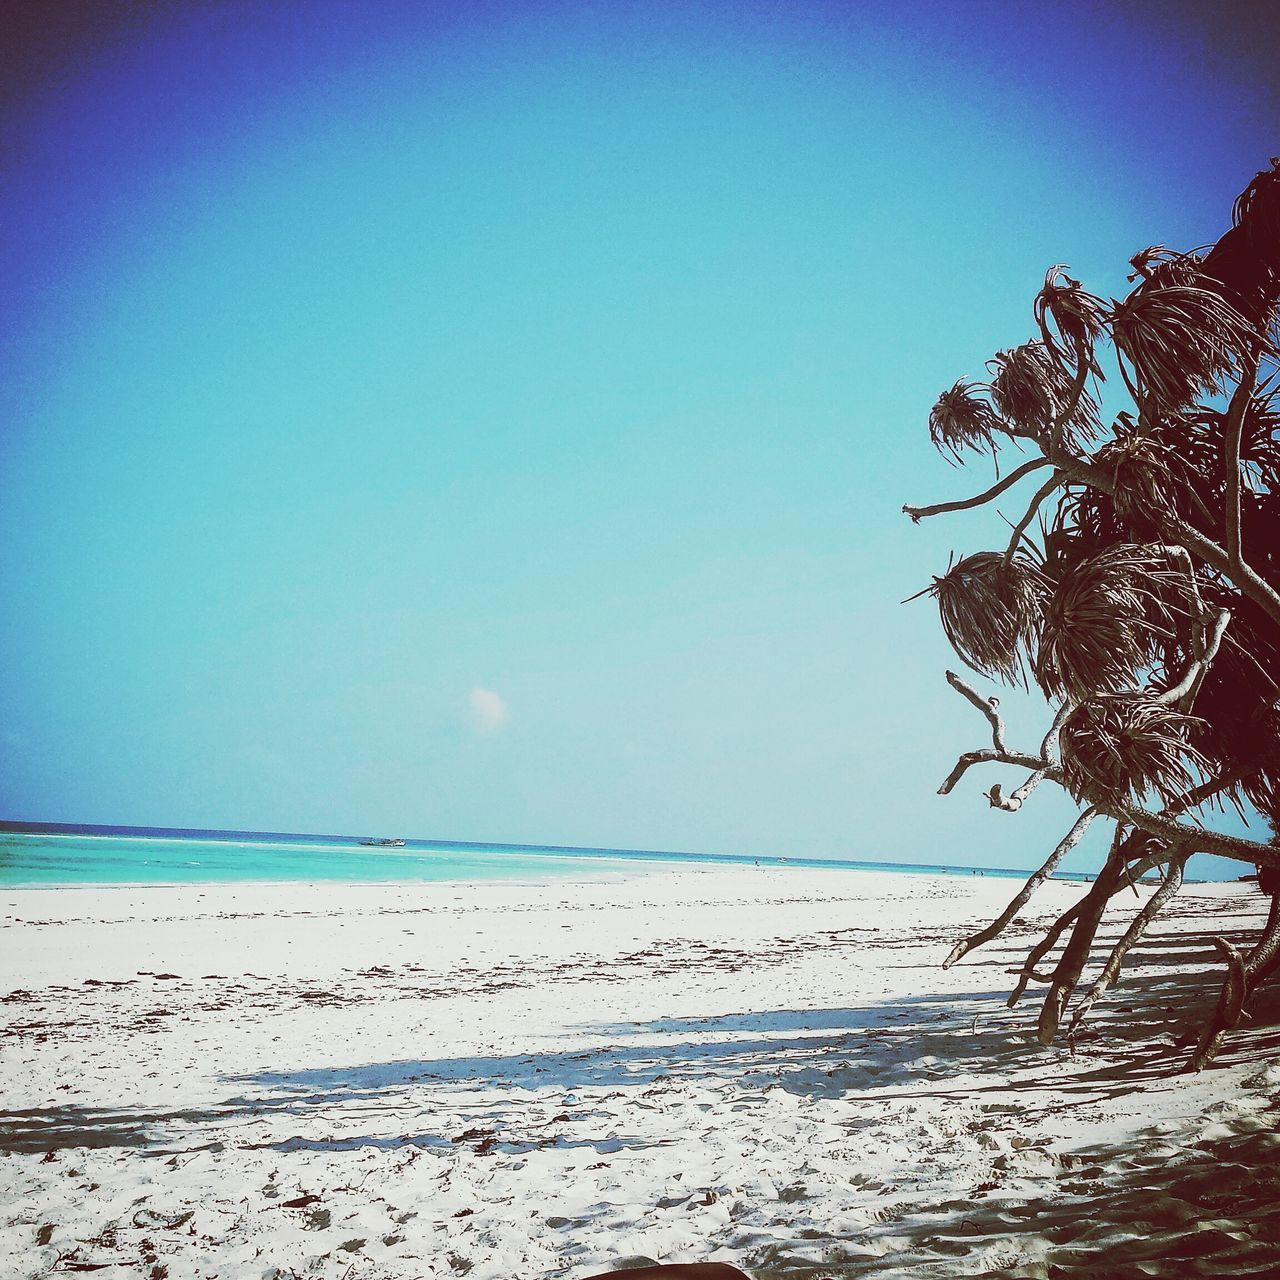 sea, horizon over water, beach, clear sky, nature, copy space, scenics, water, blue, beauty in nature, tranquility, tranquil scene, day, sand, outdoors, no people, sky